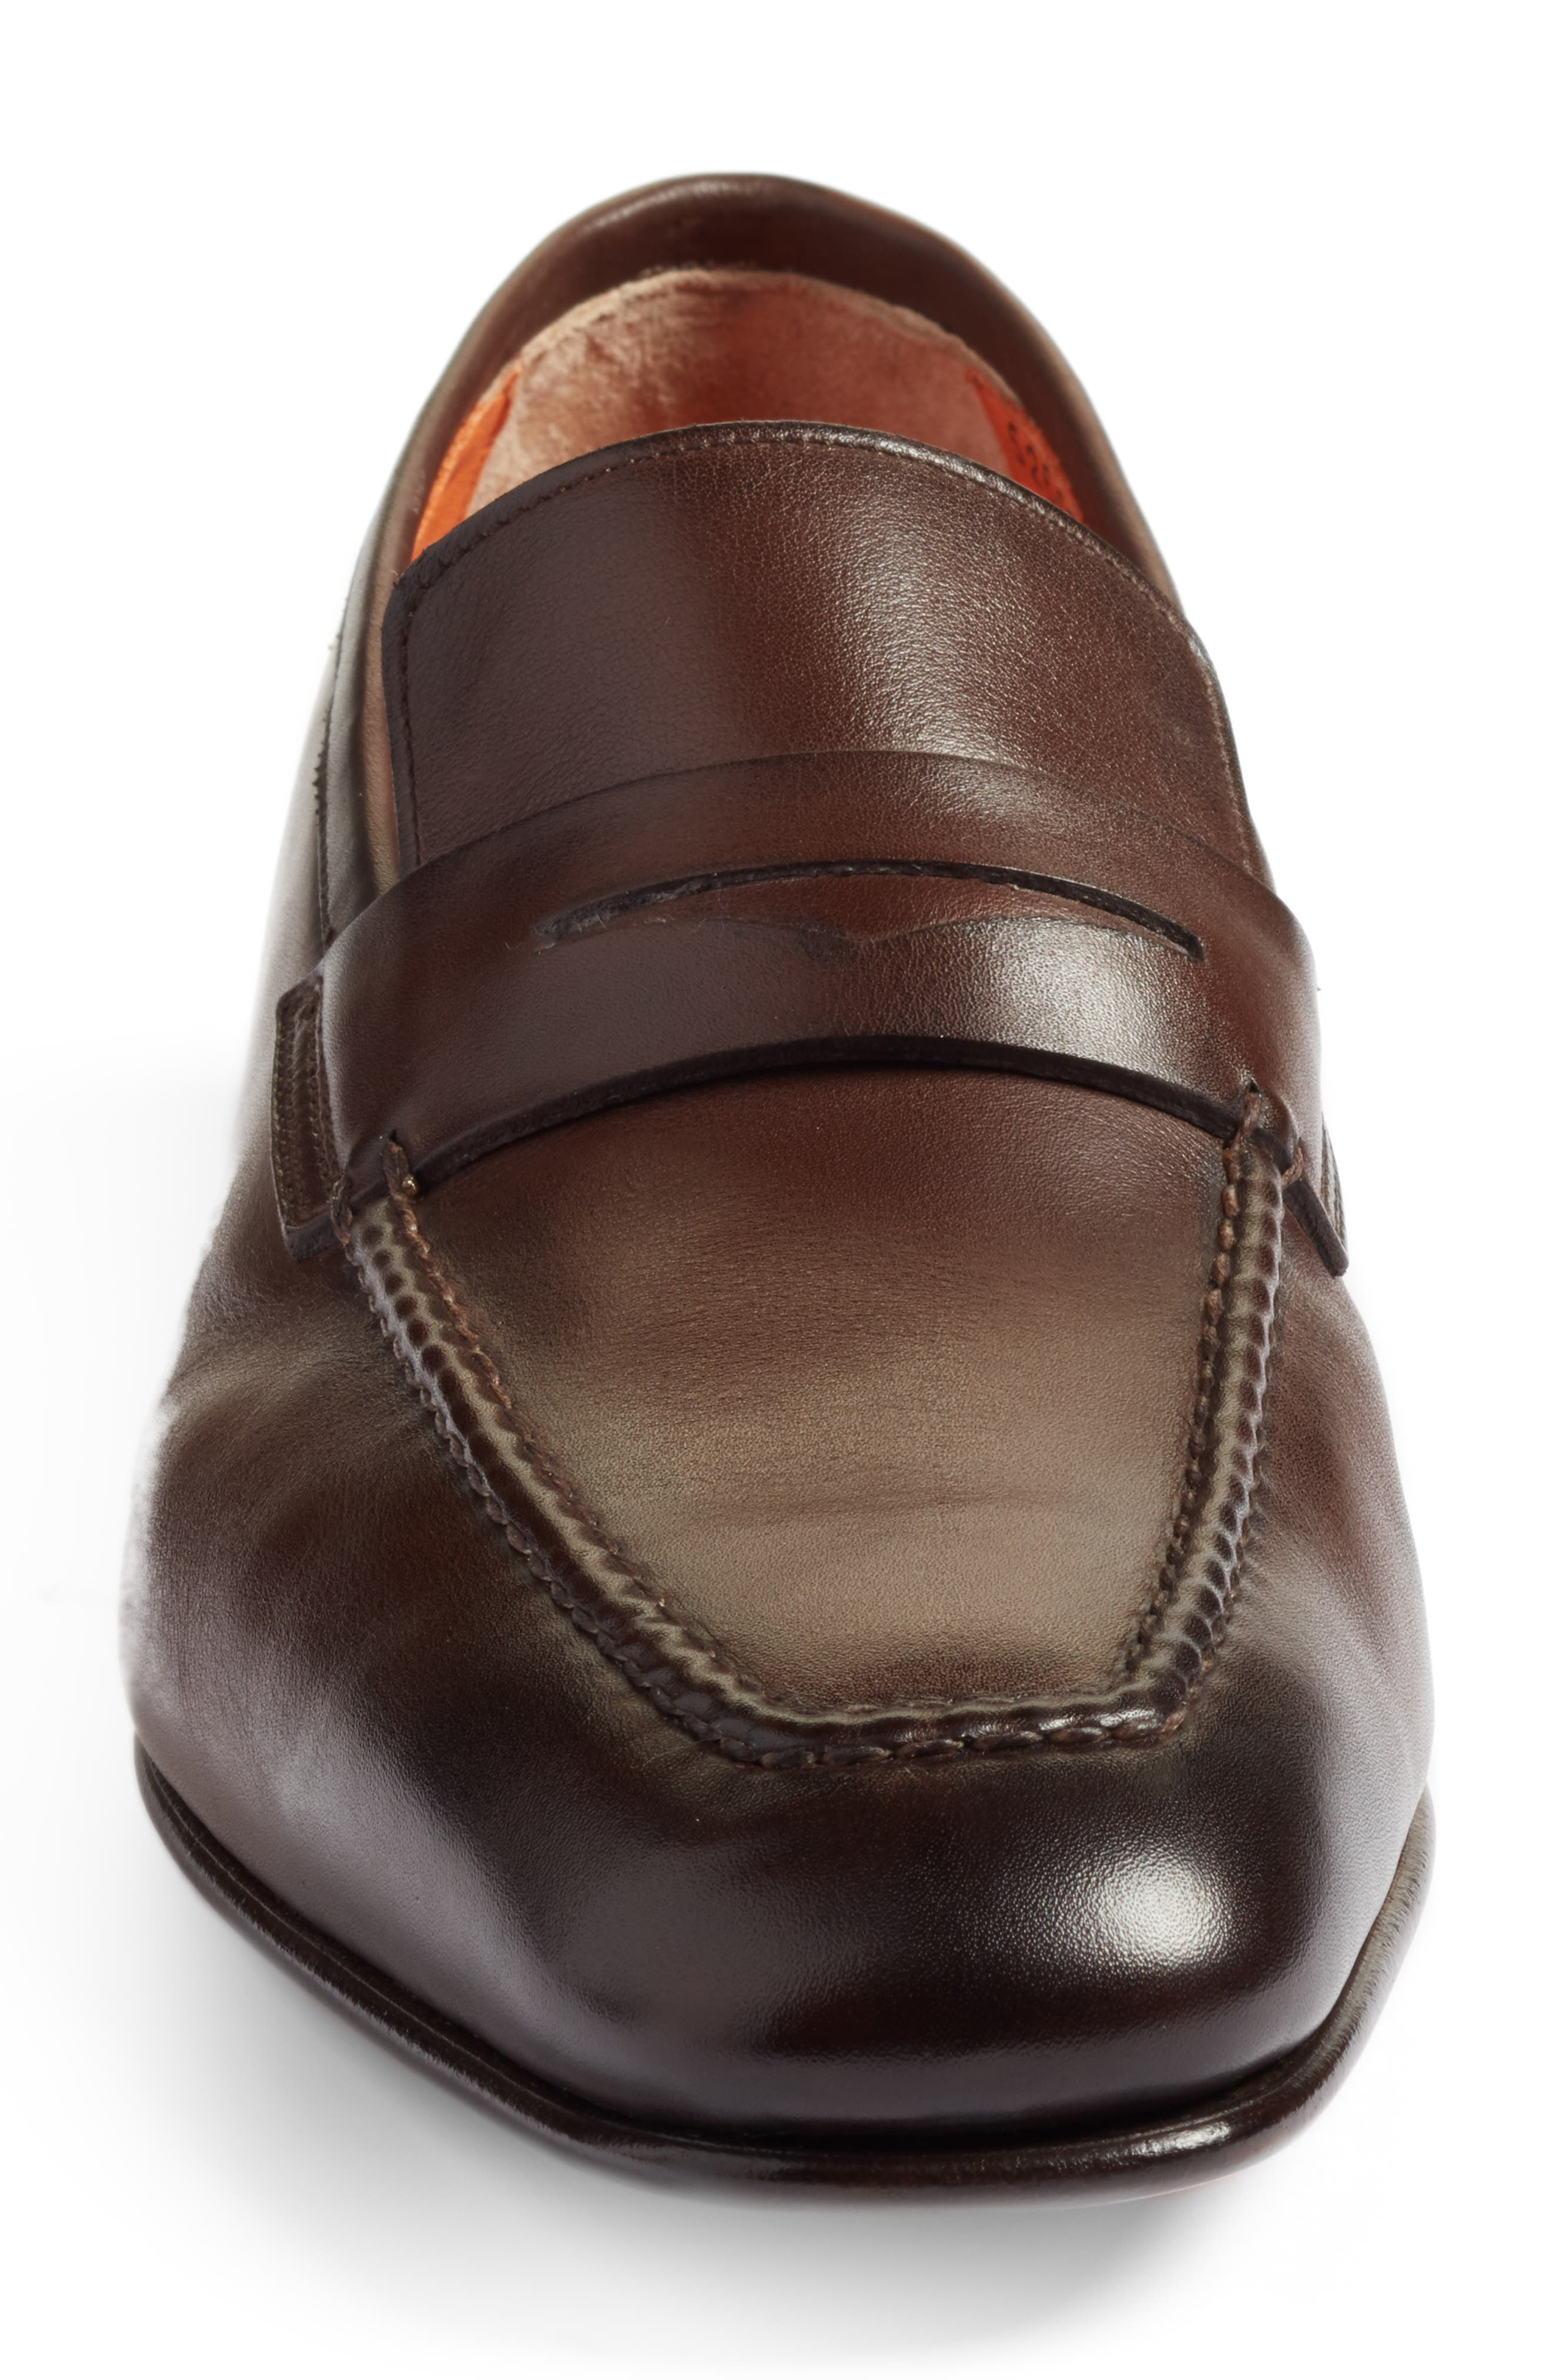 Fox Packable Penny Loafer,                             Alternate thumbnail 4, color,                             DARK BROWN LEATHER